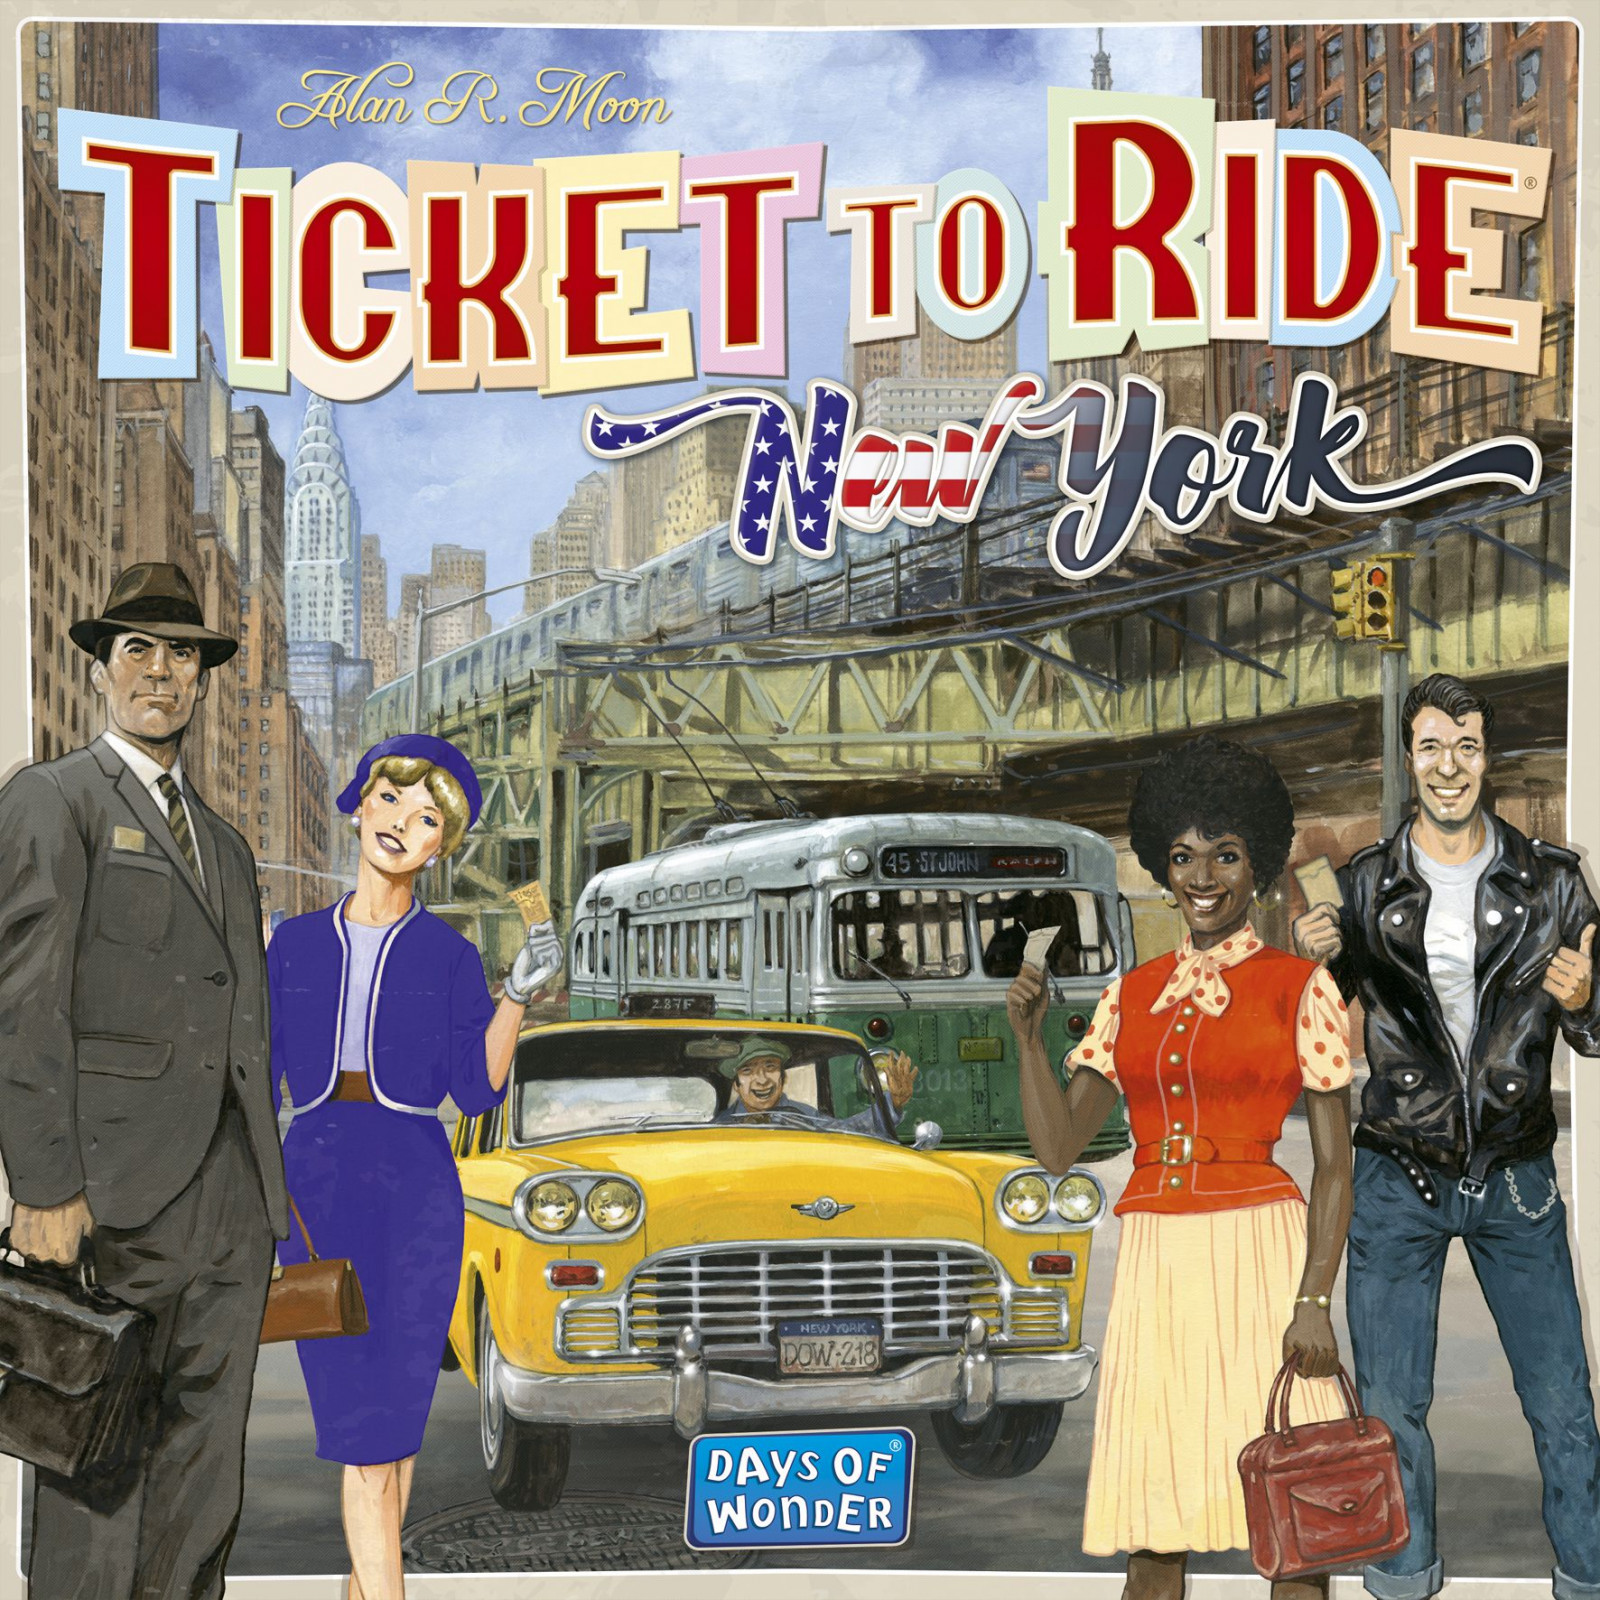 Ticket to Ride - New York image